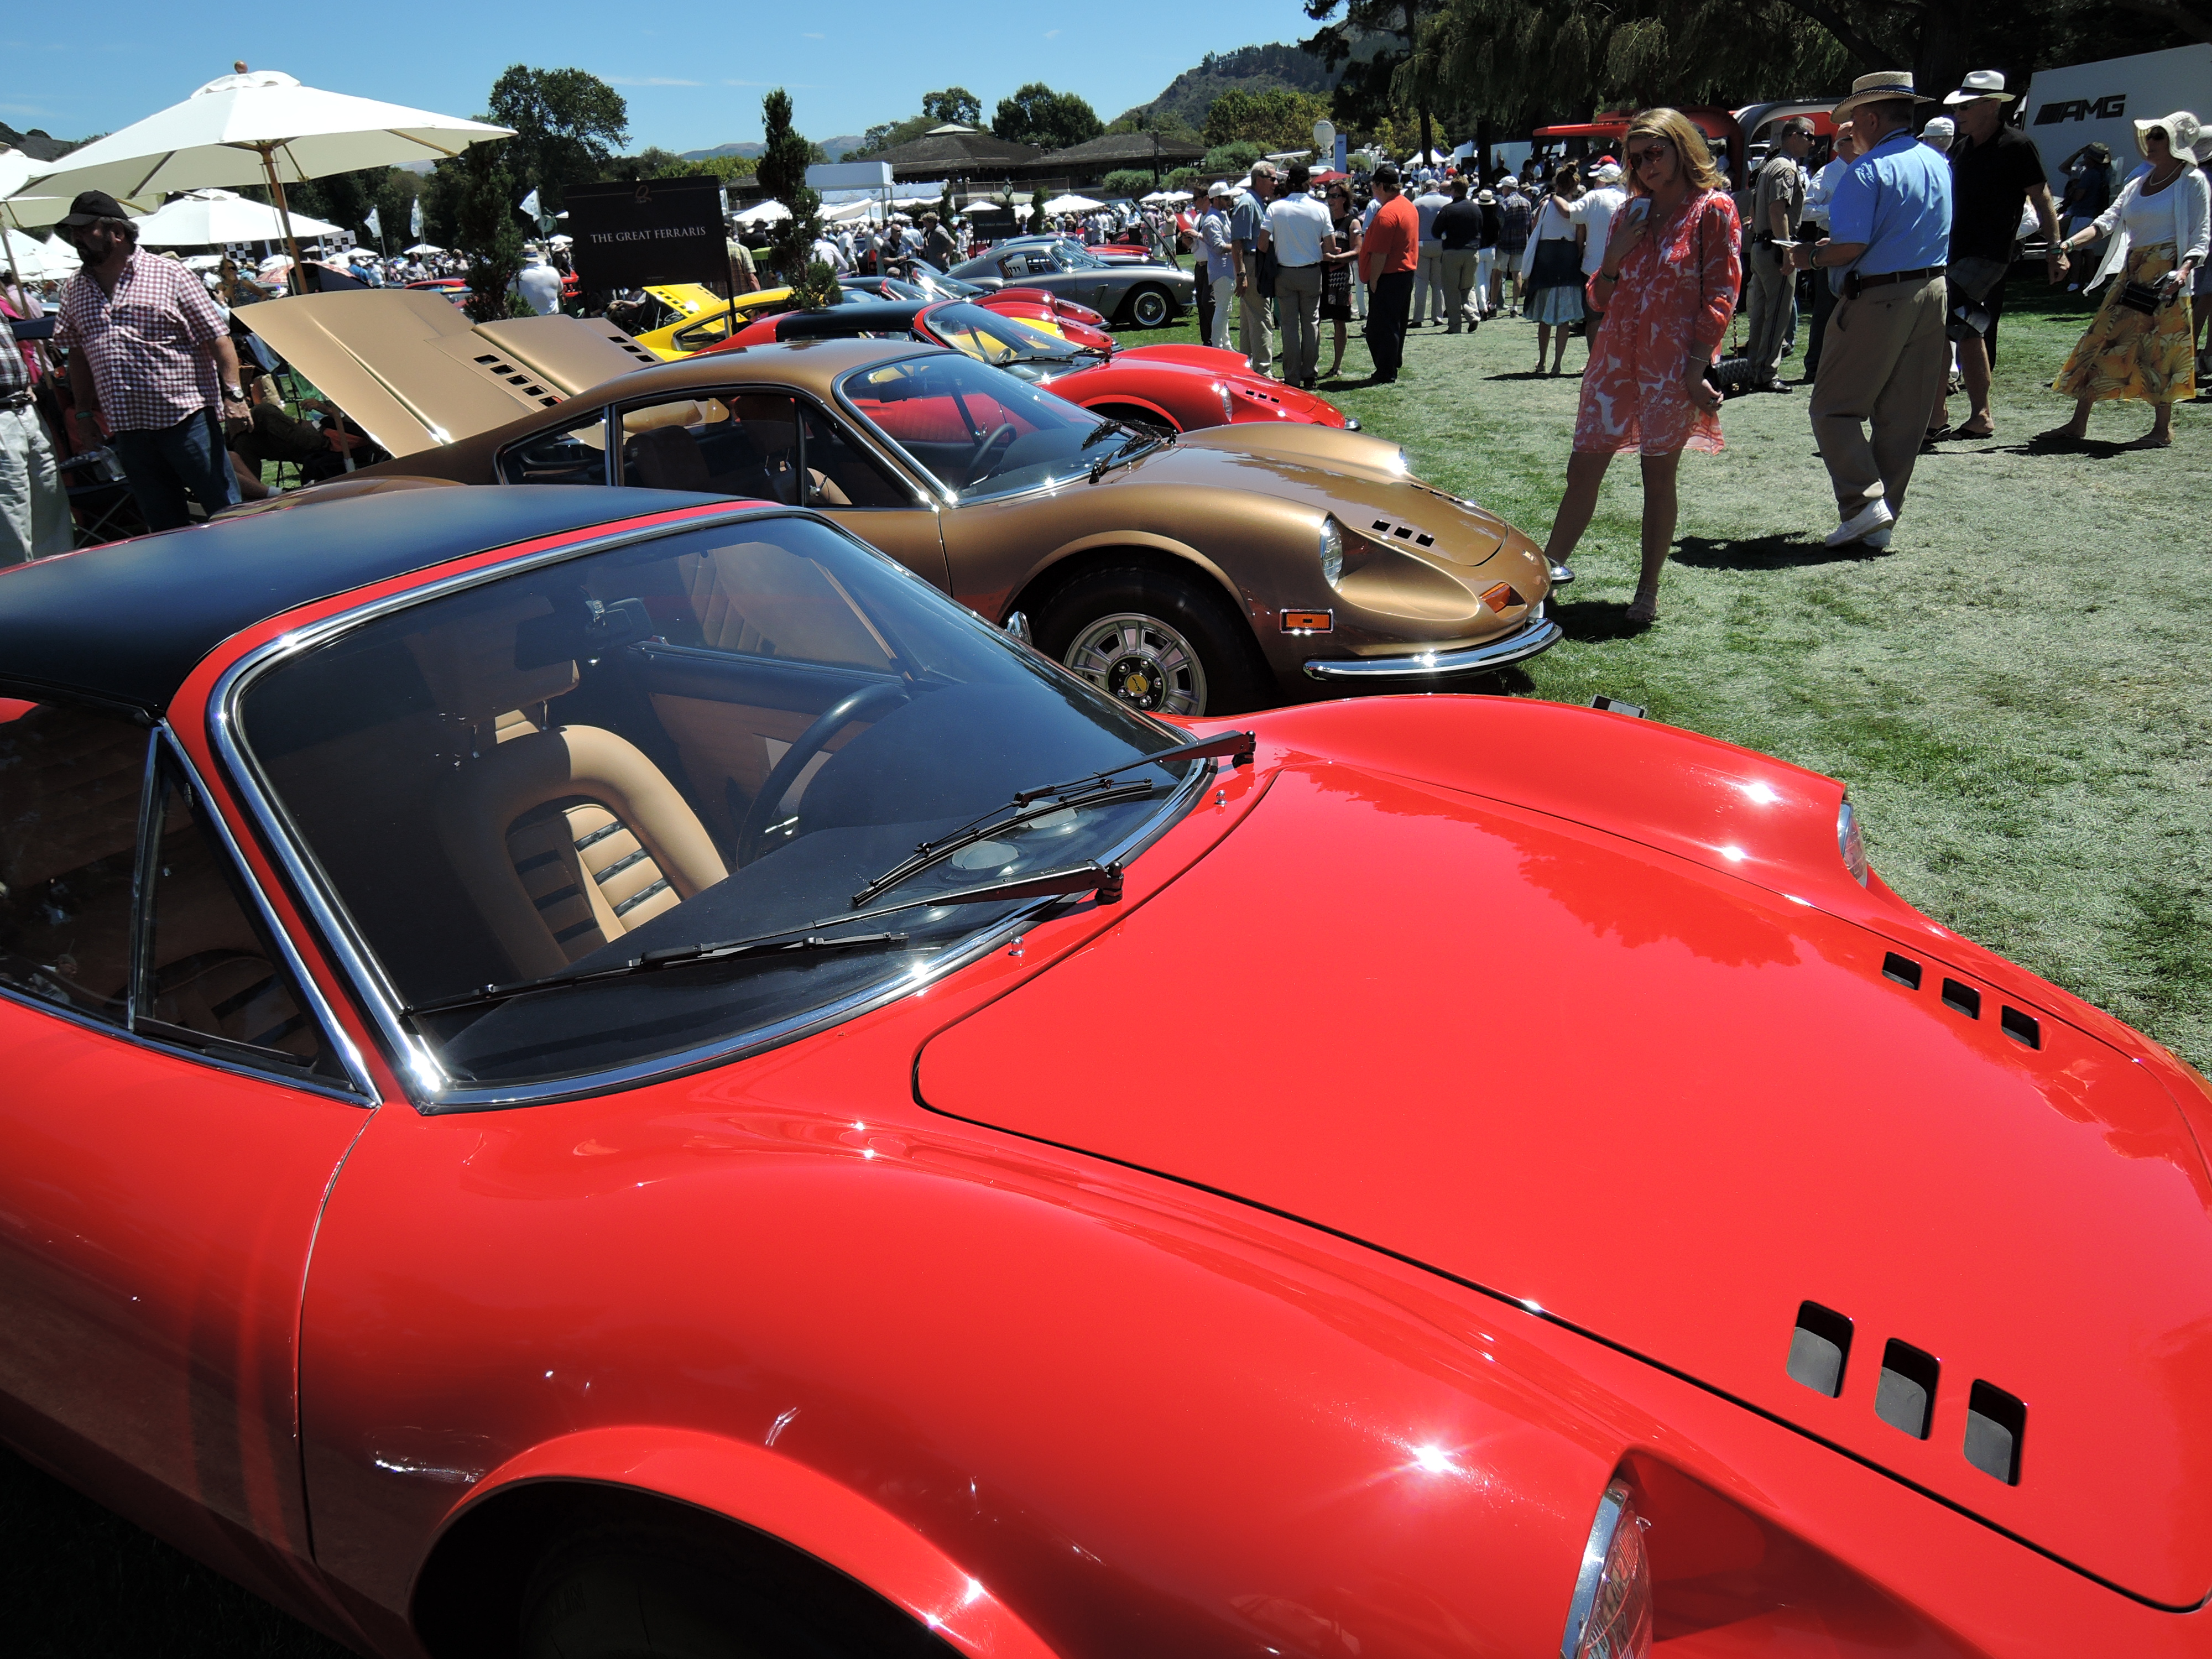 red 1974 Ferrari Dino 246 GTS - the quail